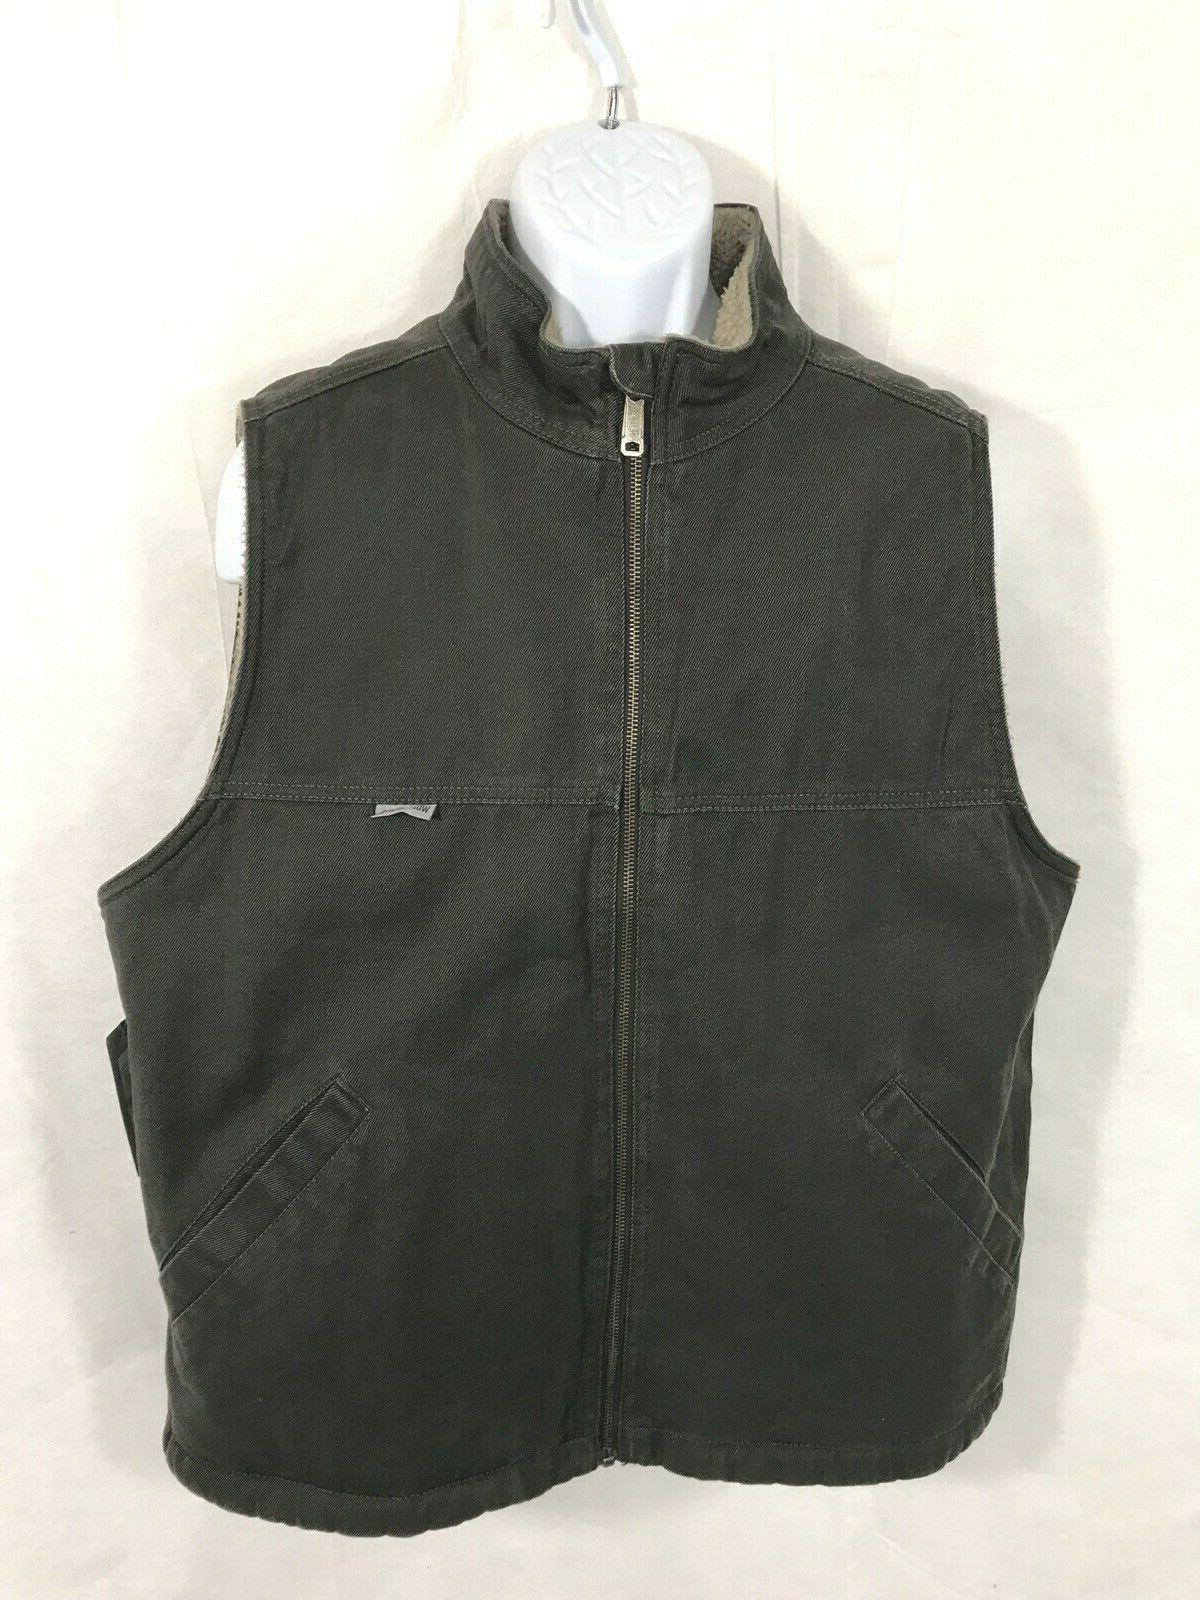 nwt mens charcoal charbon upland canvas sherpa